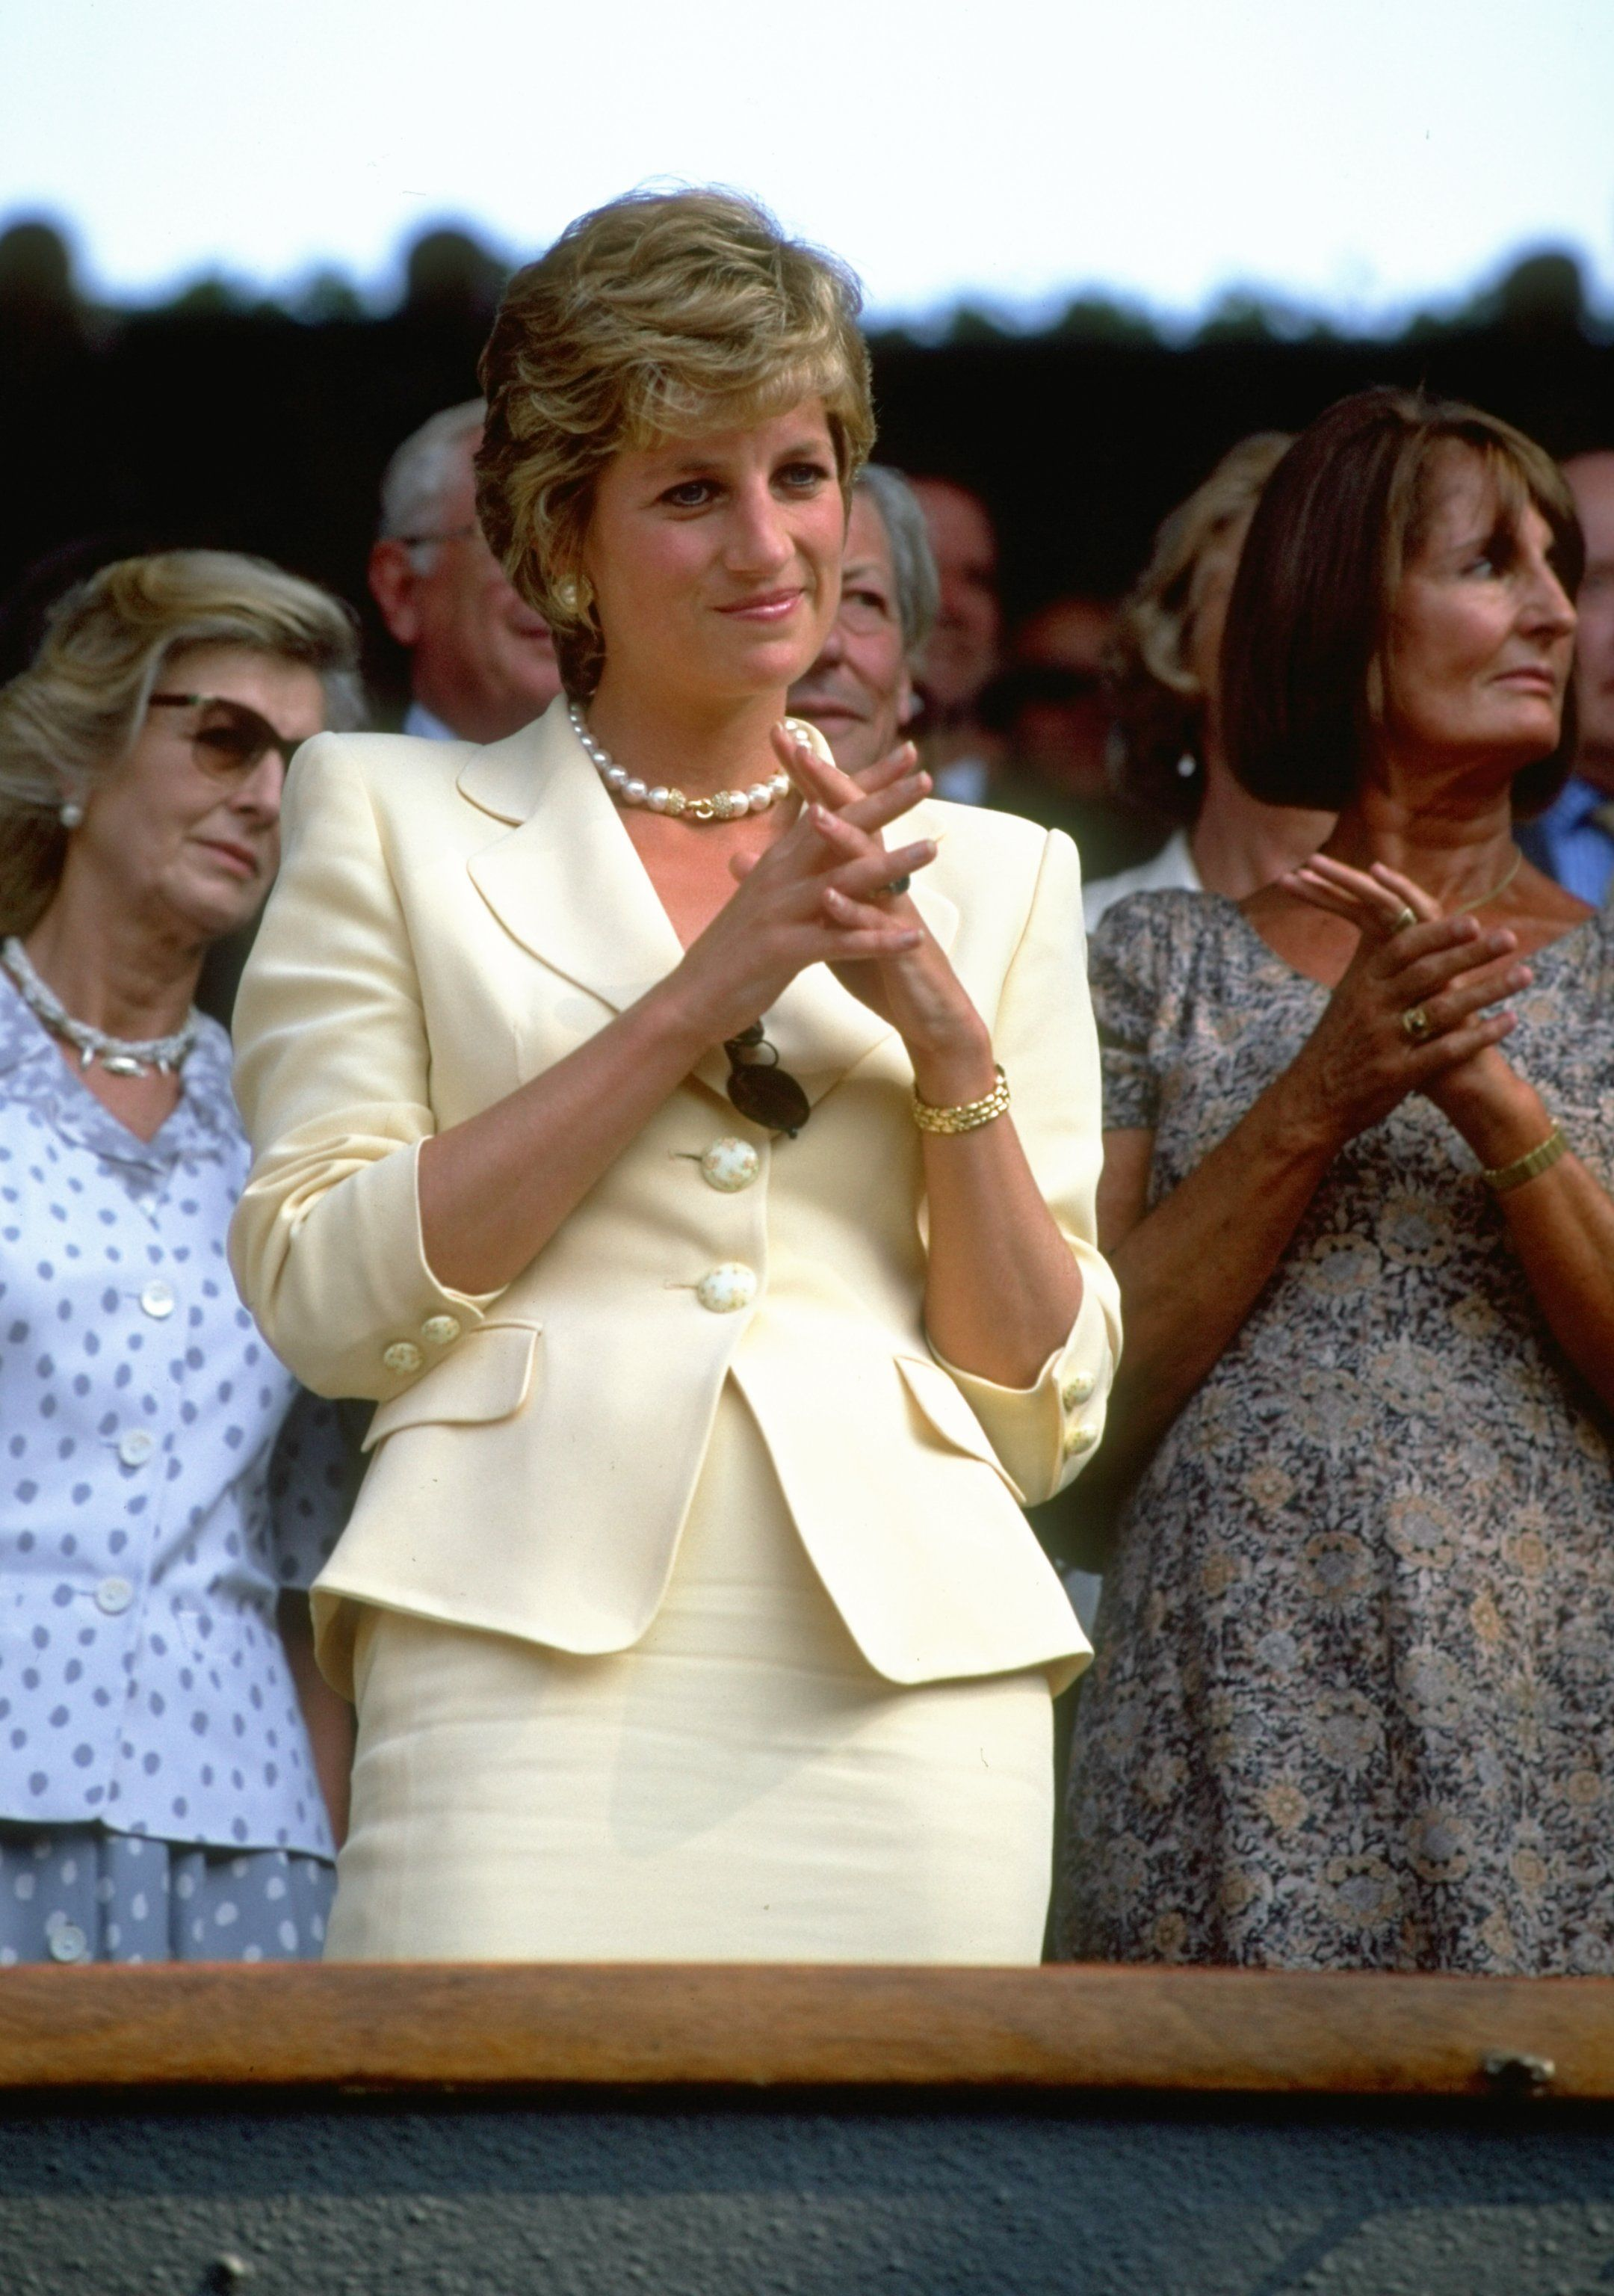 Diana, Princess of Wales aqt the Lawn Tennis Championships at Wimbledon in 1995 | Source: Getty Images